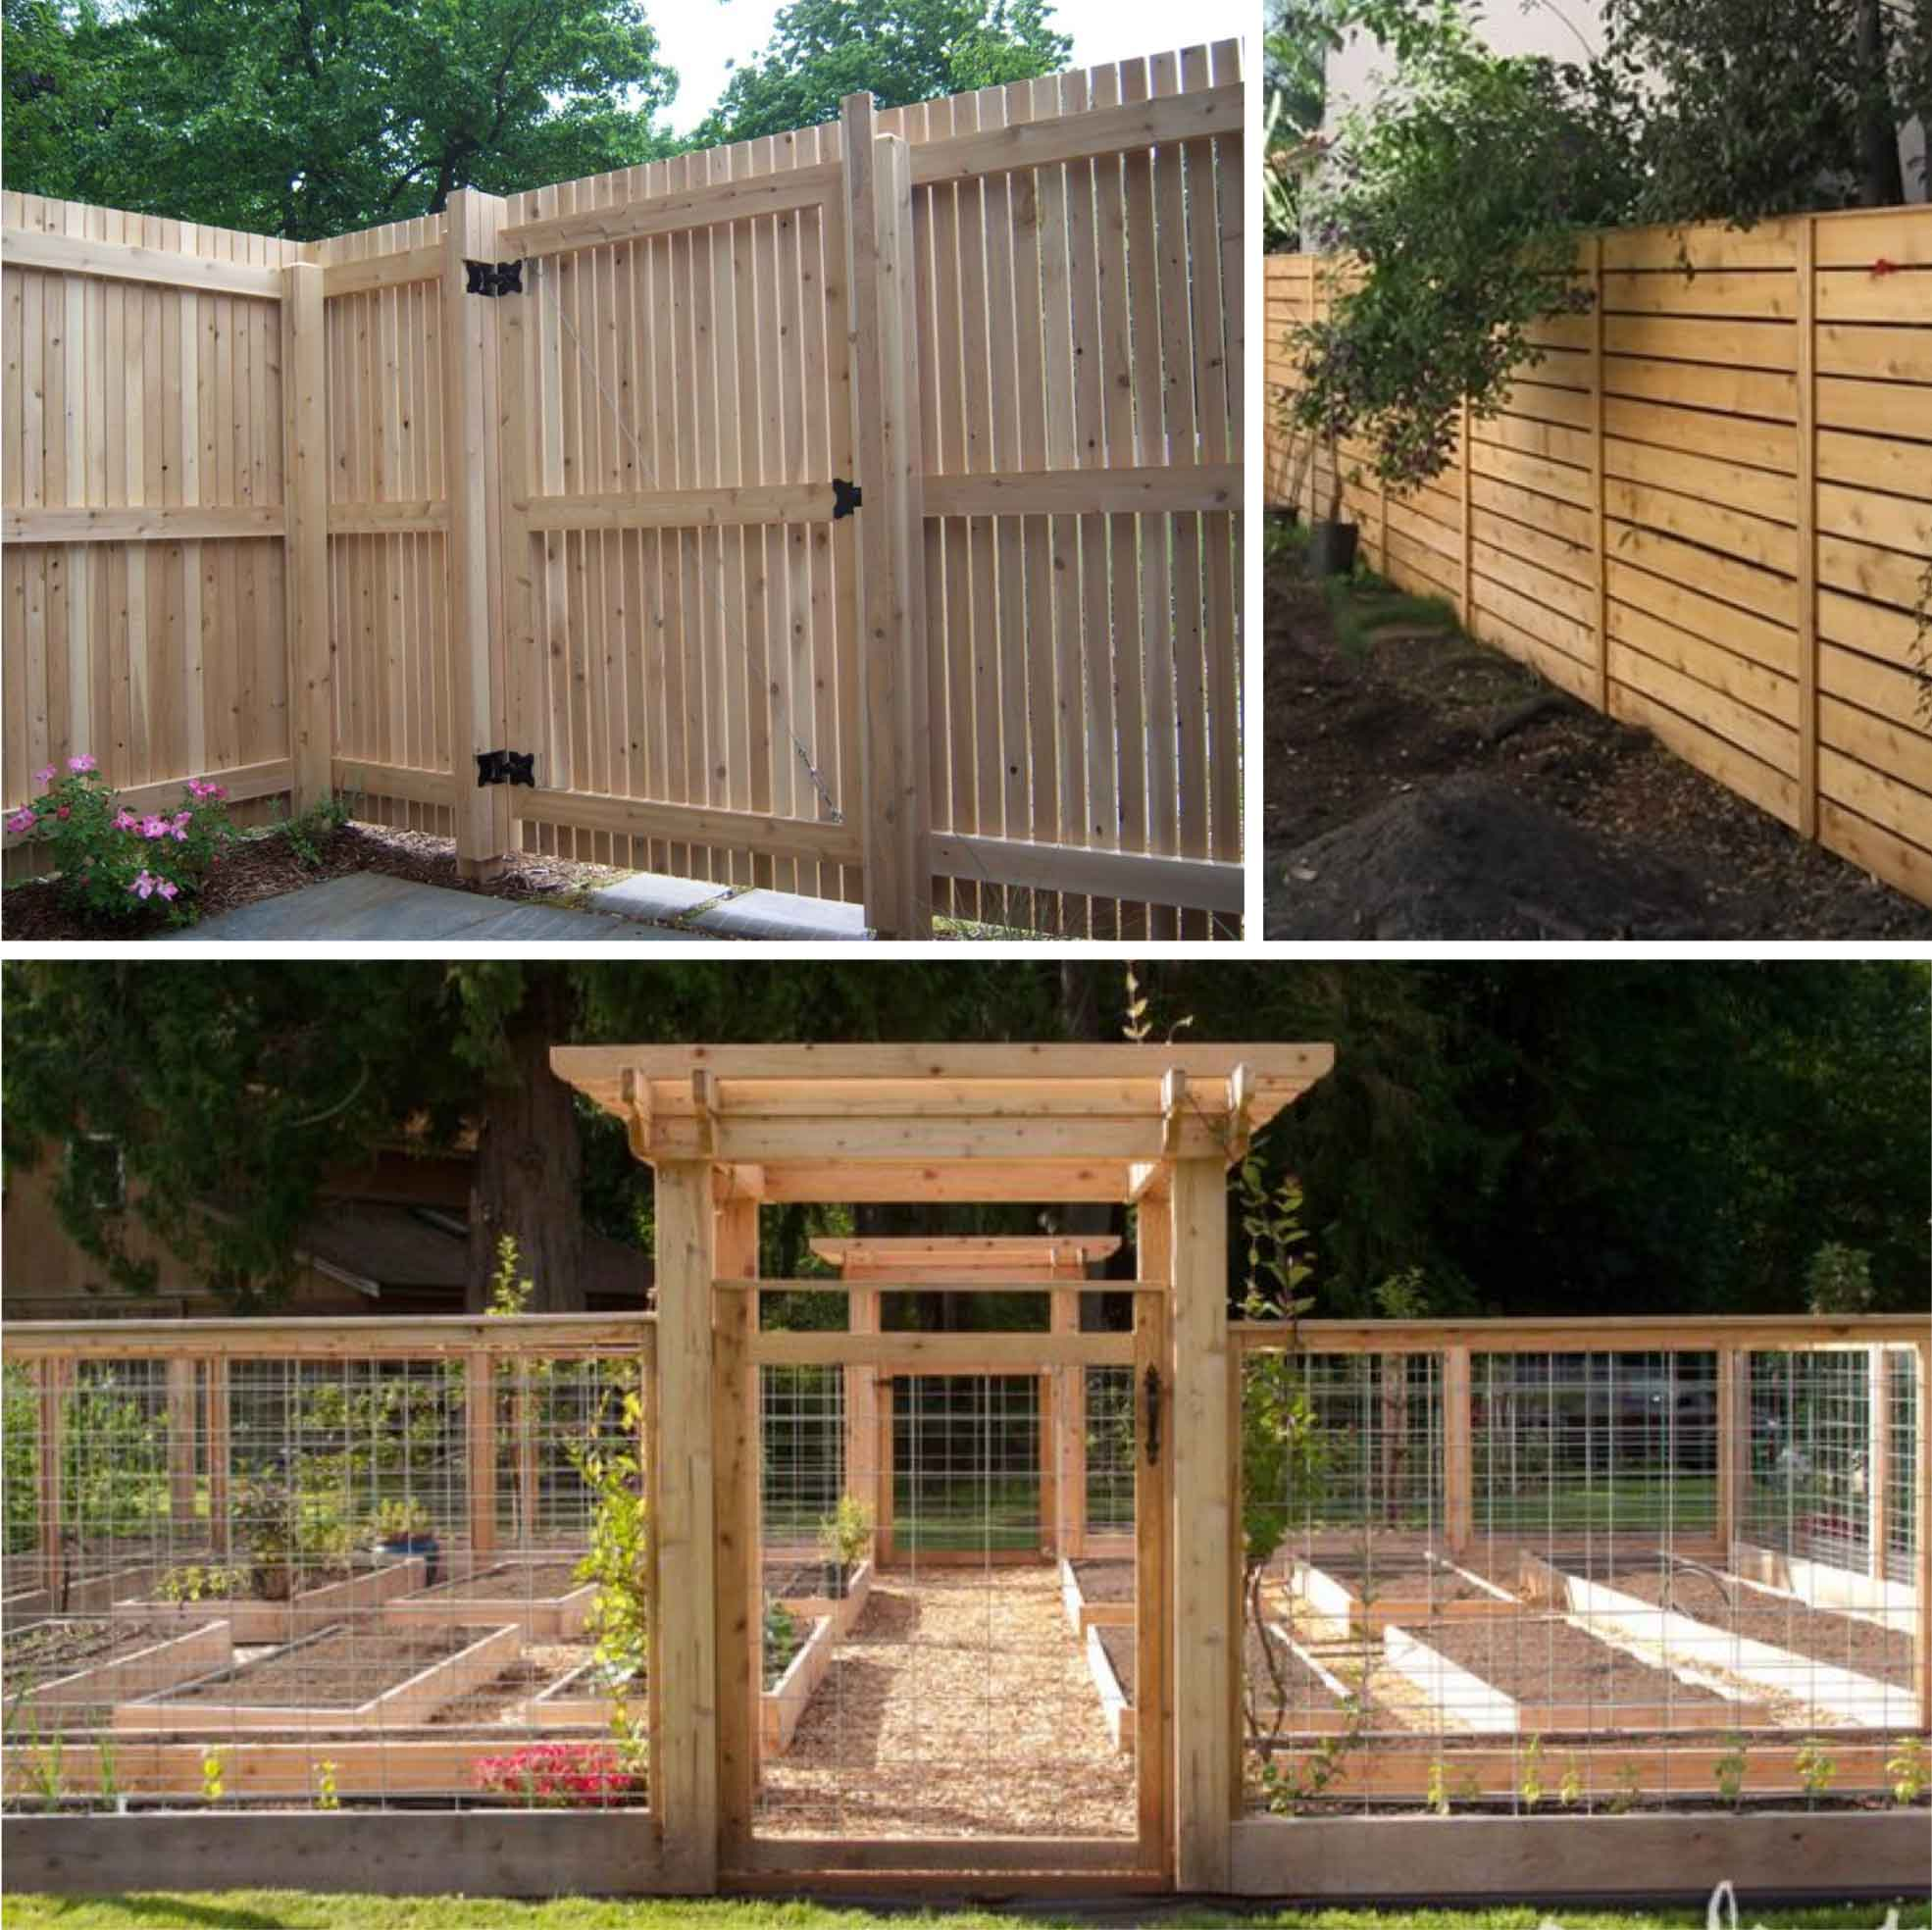 Fence Builders Birmingham Al | Birmingham Area | Thomas Lowery Renovations